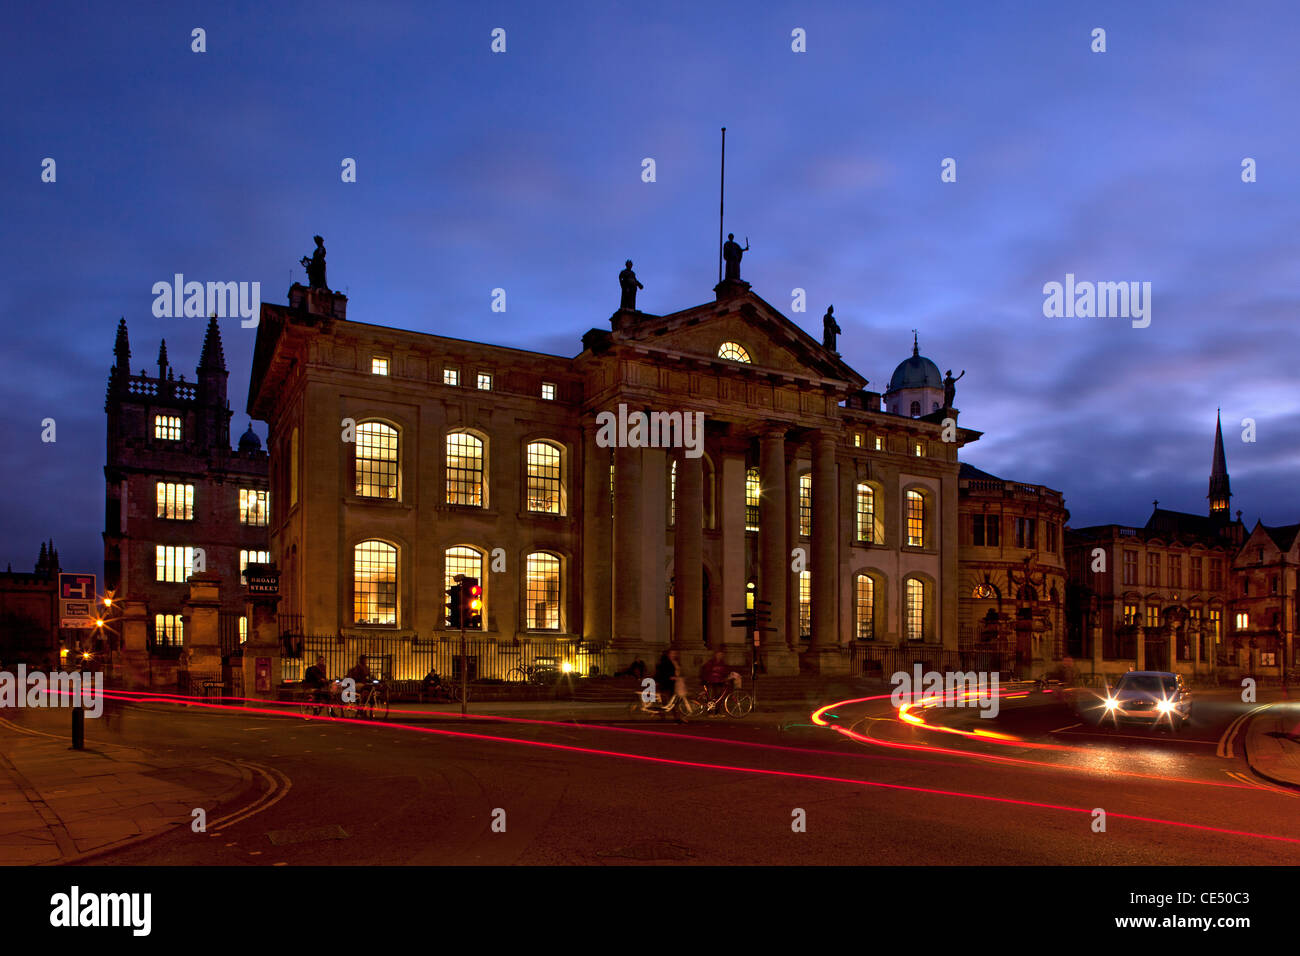 Clarendon Building at night, Broad Street, Oxford, Oxforshire, england - Stock Image